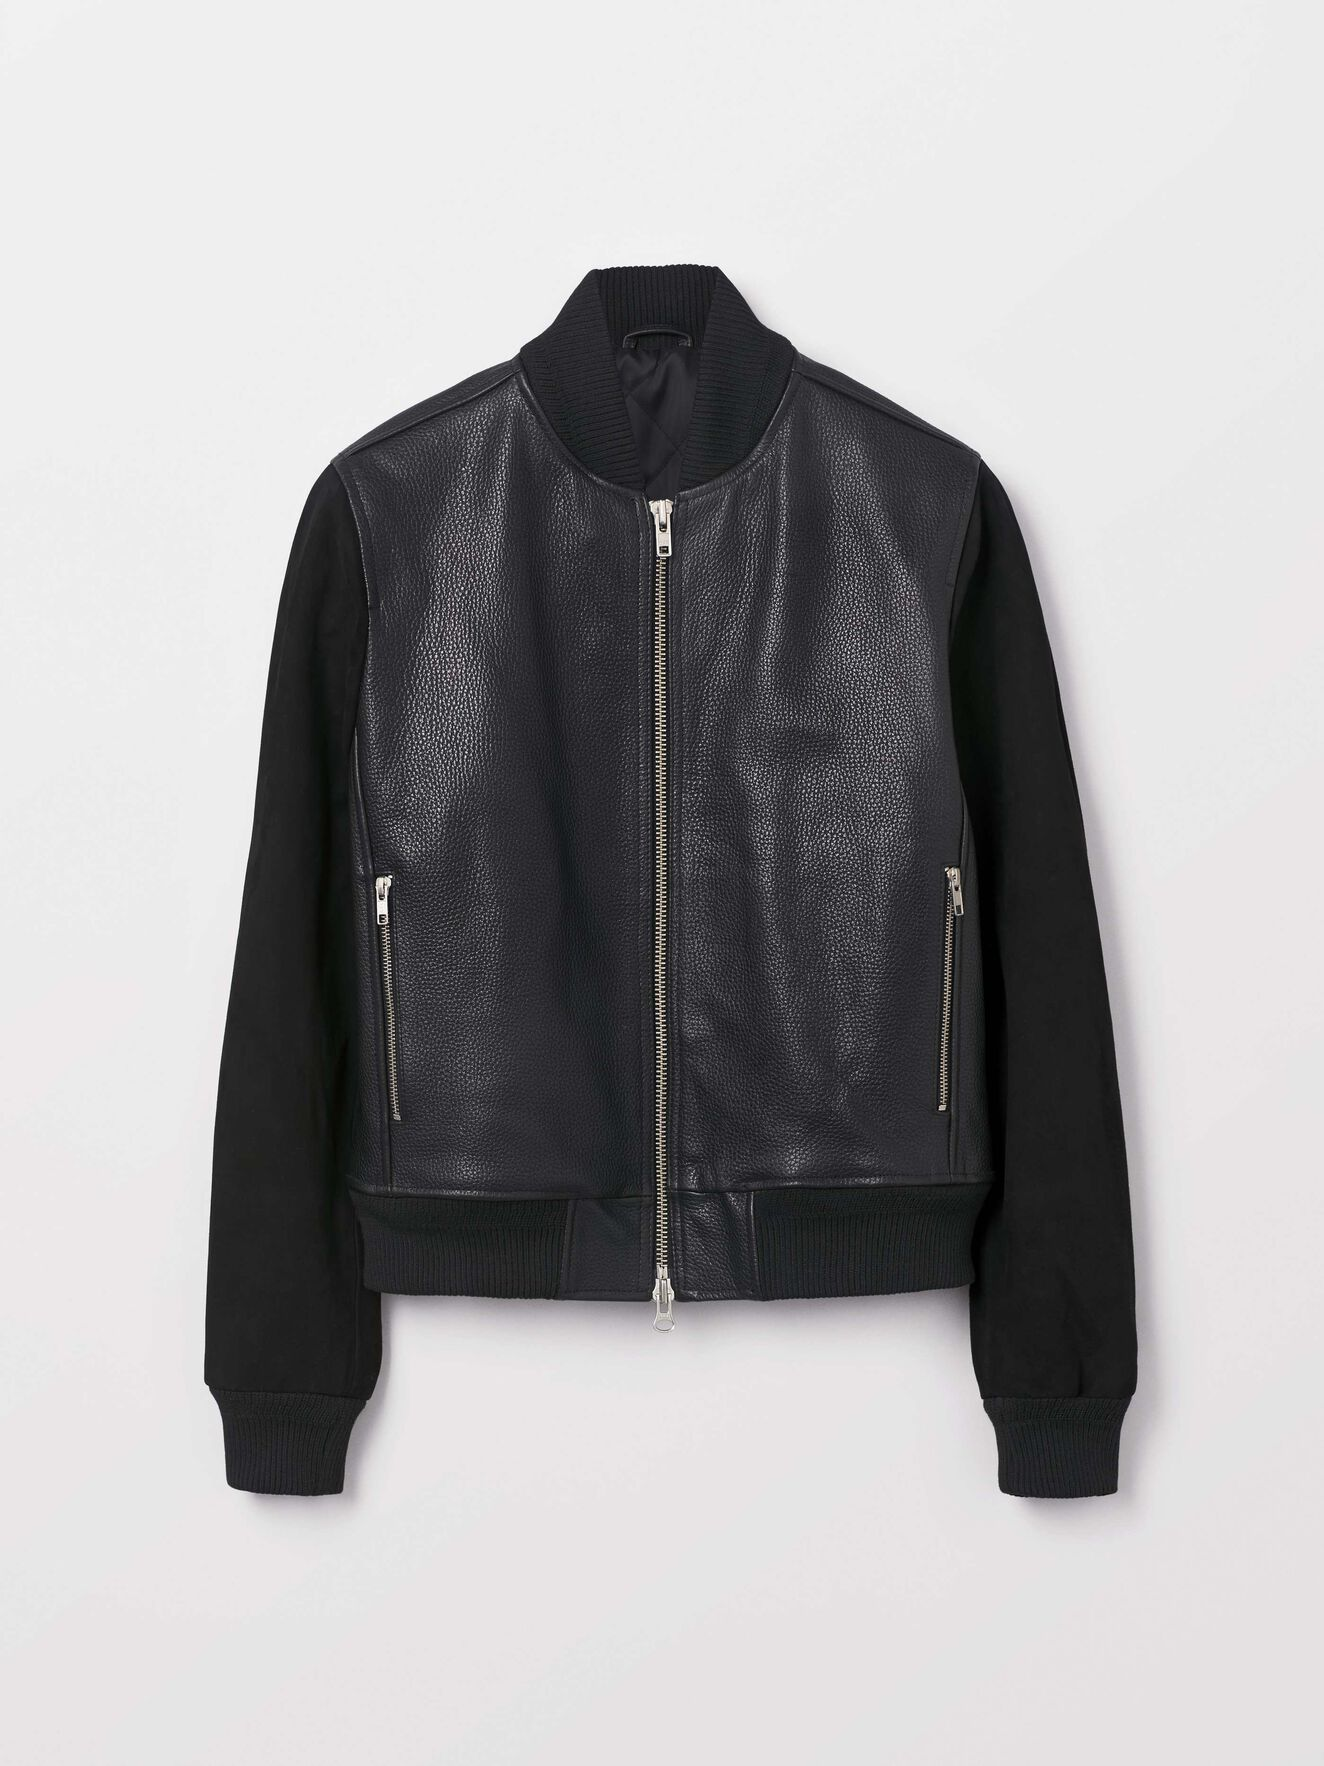 Laslar Jacket in Black from Tiger of Sweden